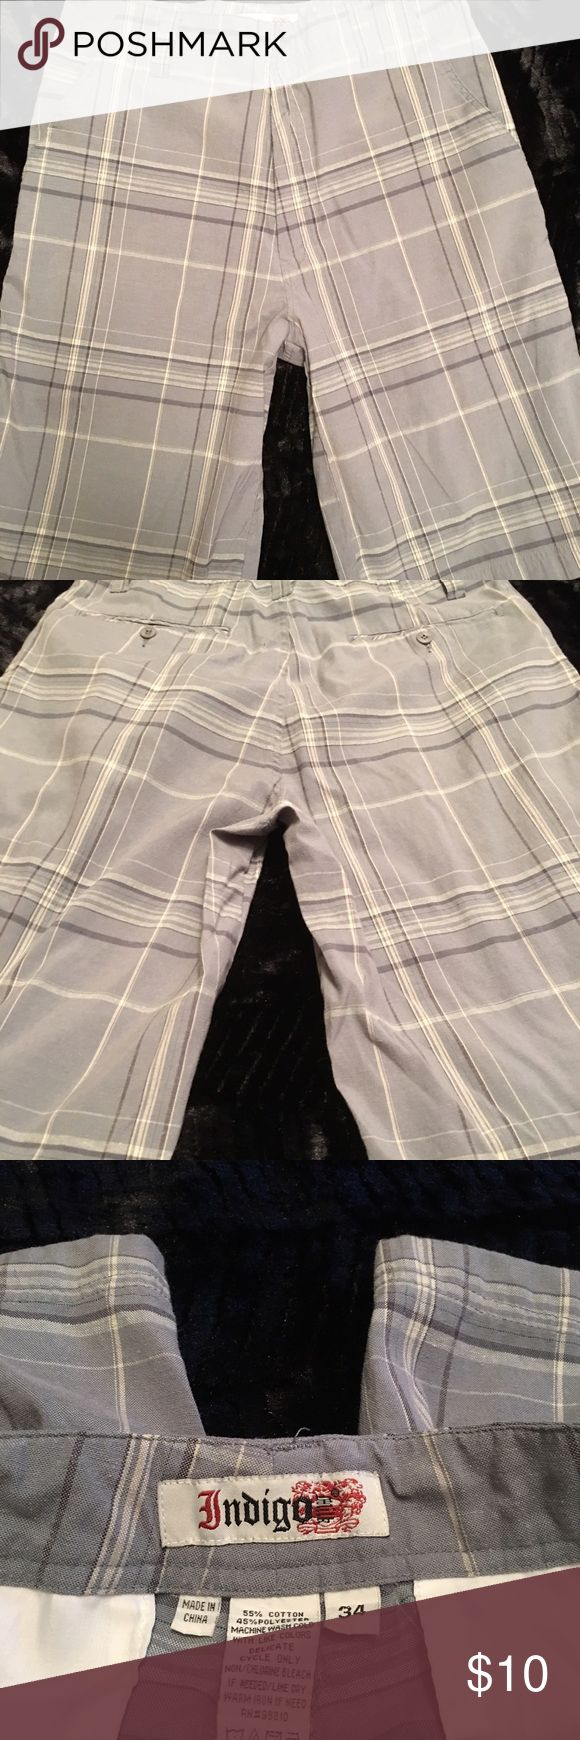 Men's Plaid Shorts, Size 34 Men's plaid shirts, size 34, in good condition Indigo Shorts